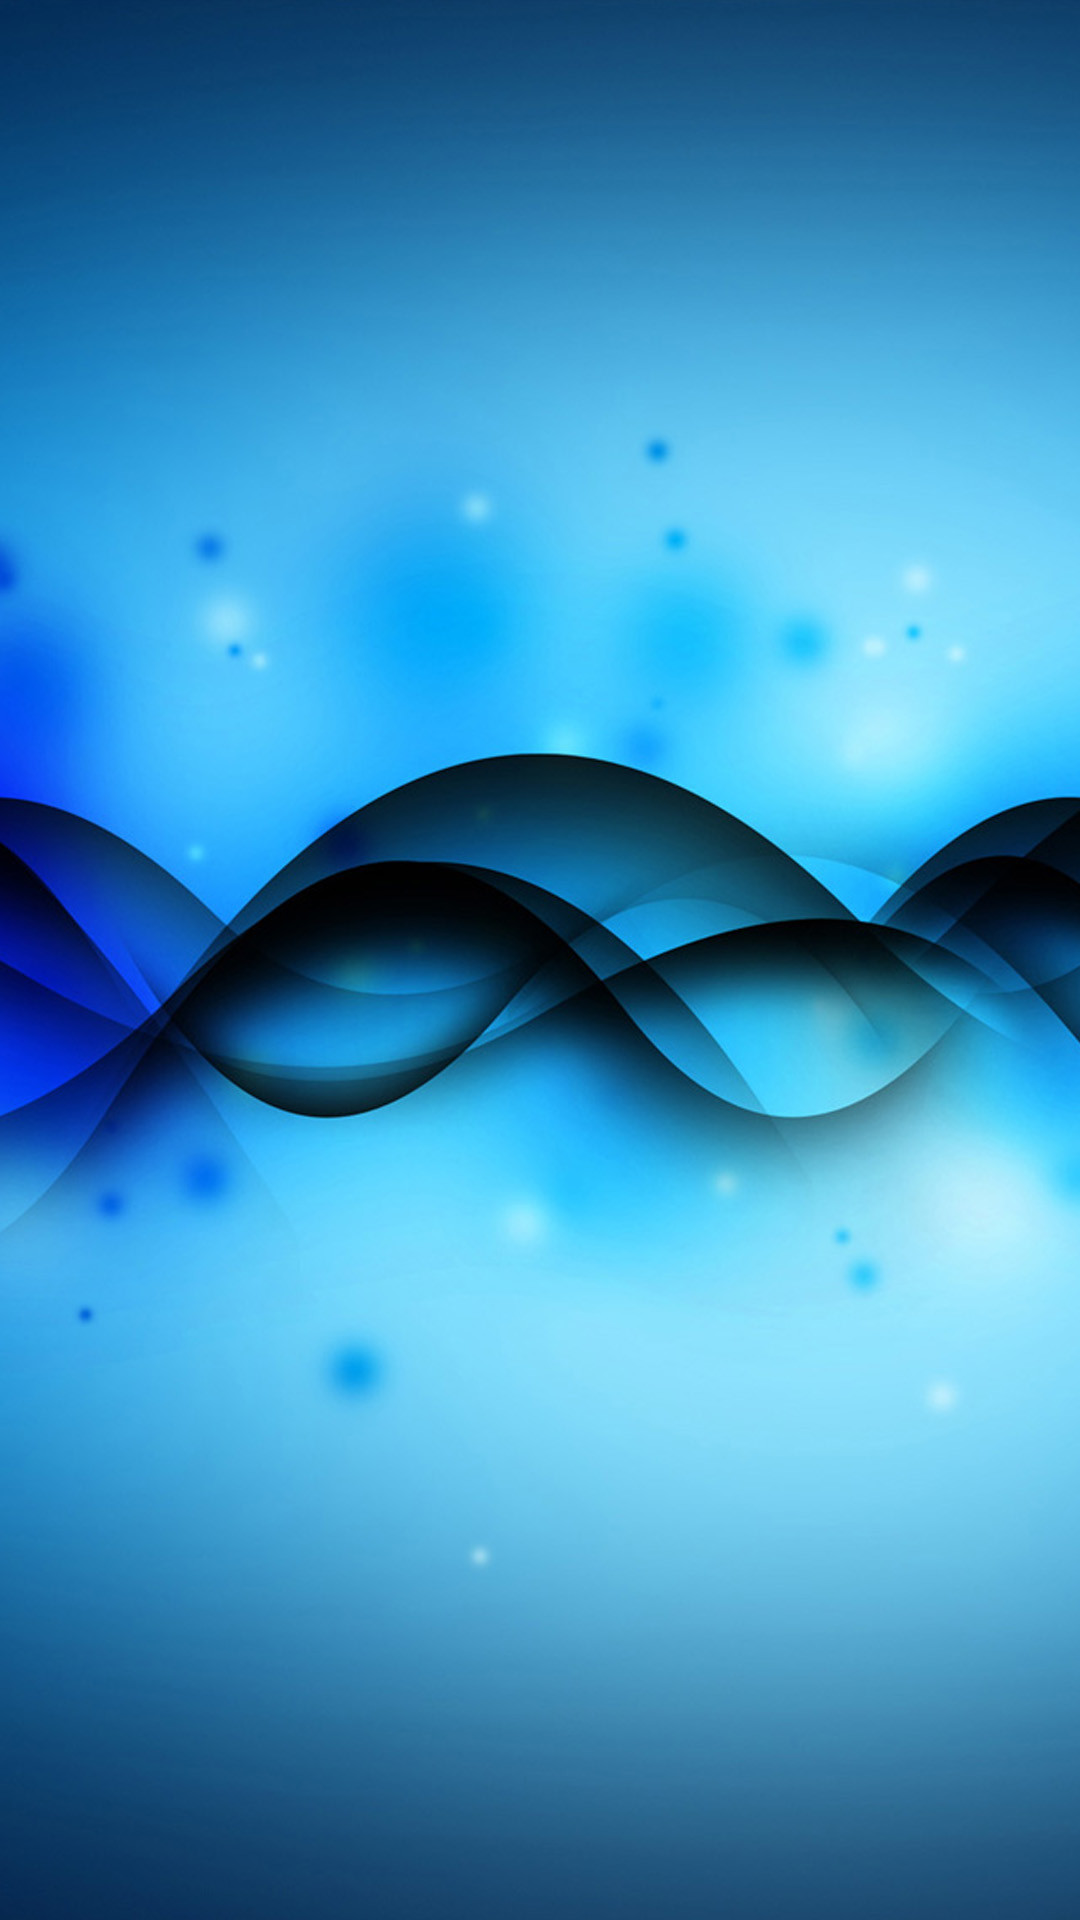 Blue sound waves Galaxy Note 3 Wallpaper